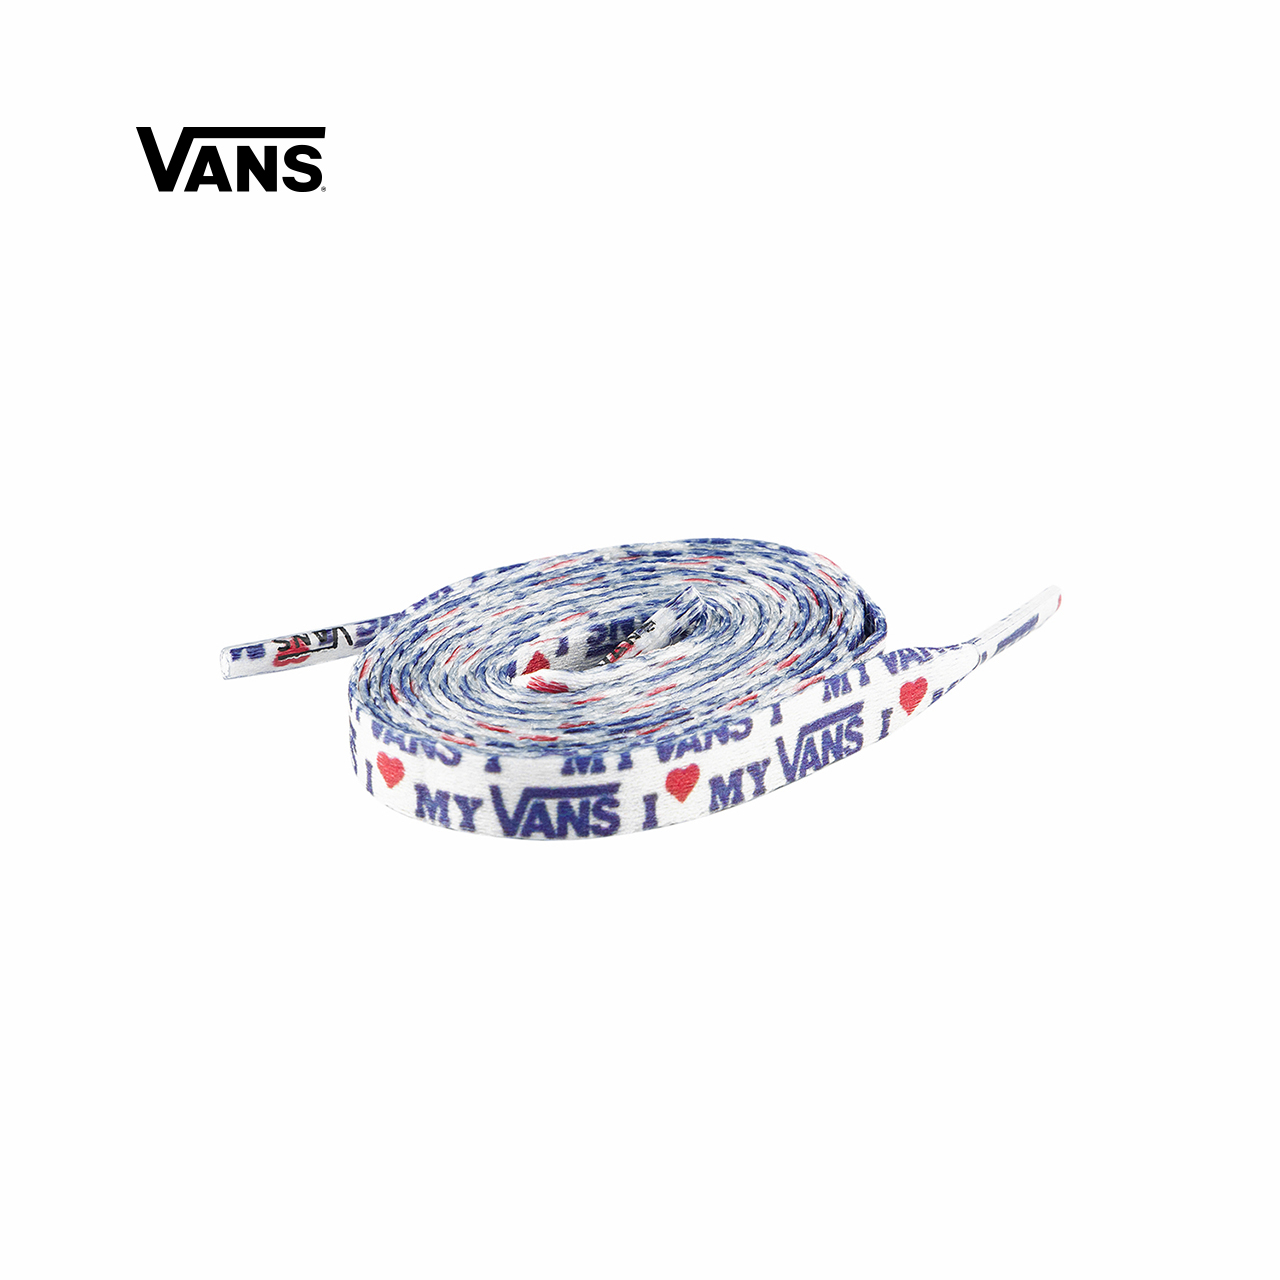 Vans Vance official white print sports casual mens and womens shoelaces